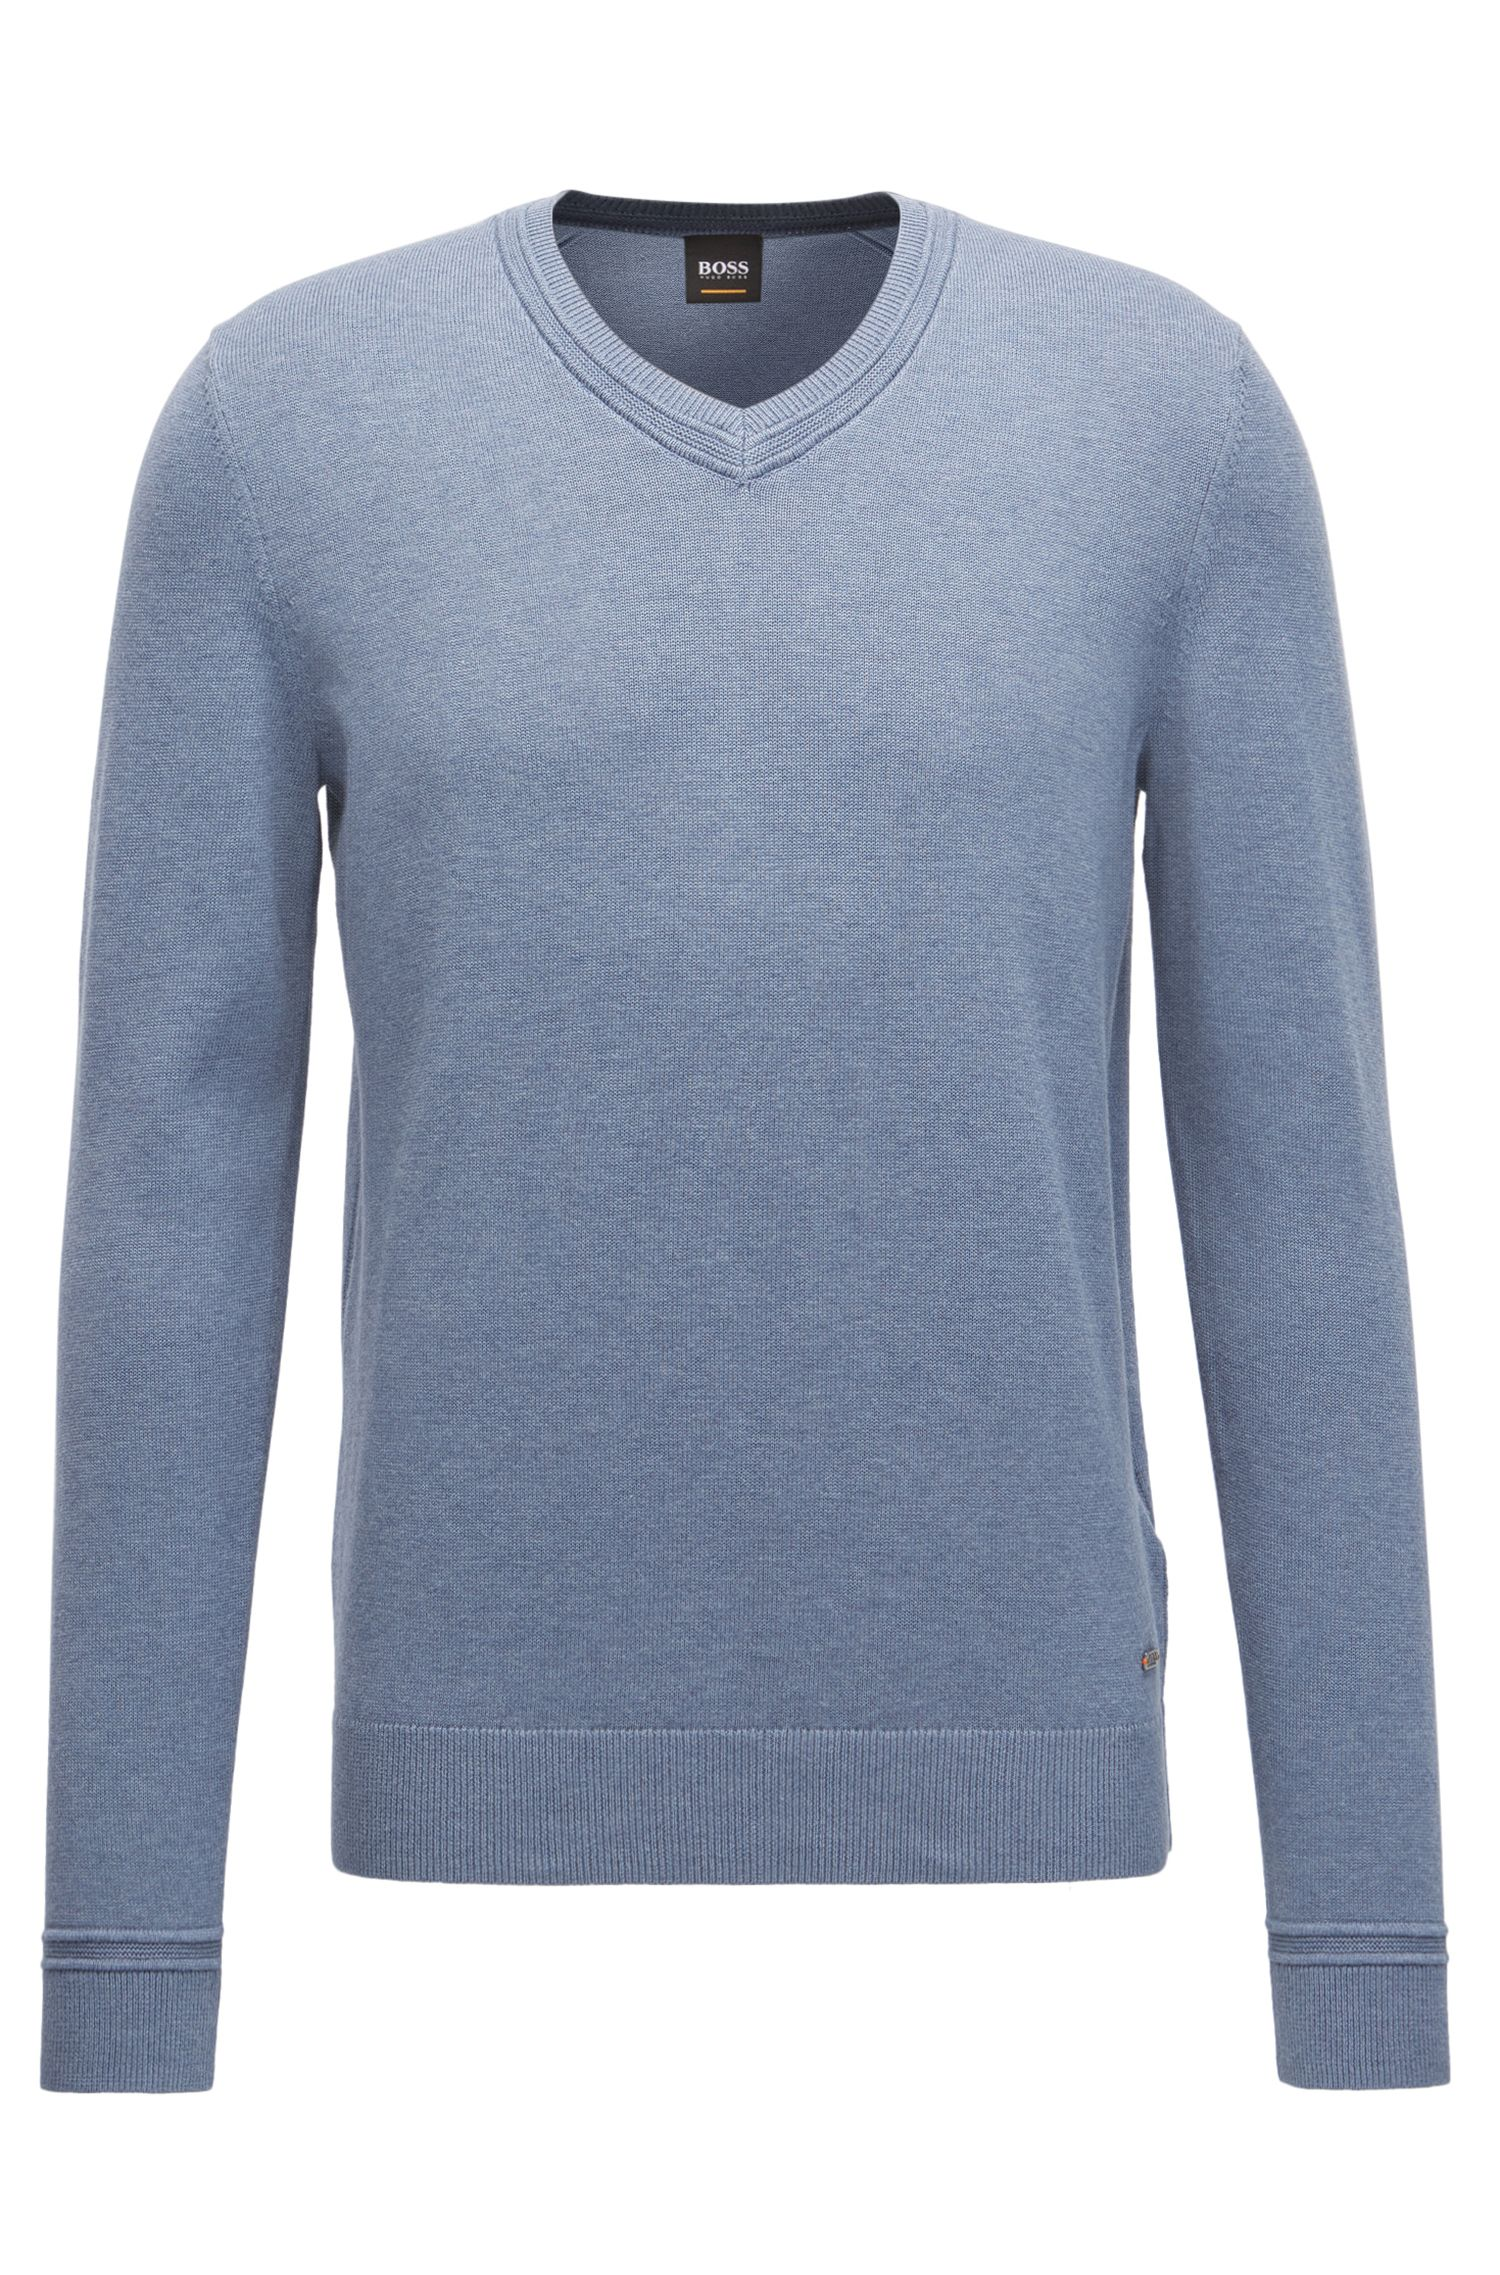 V-neck cotton-blend sweater with textured accents